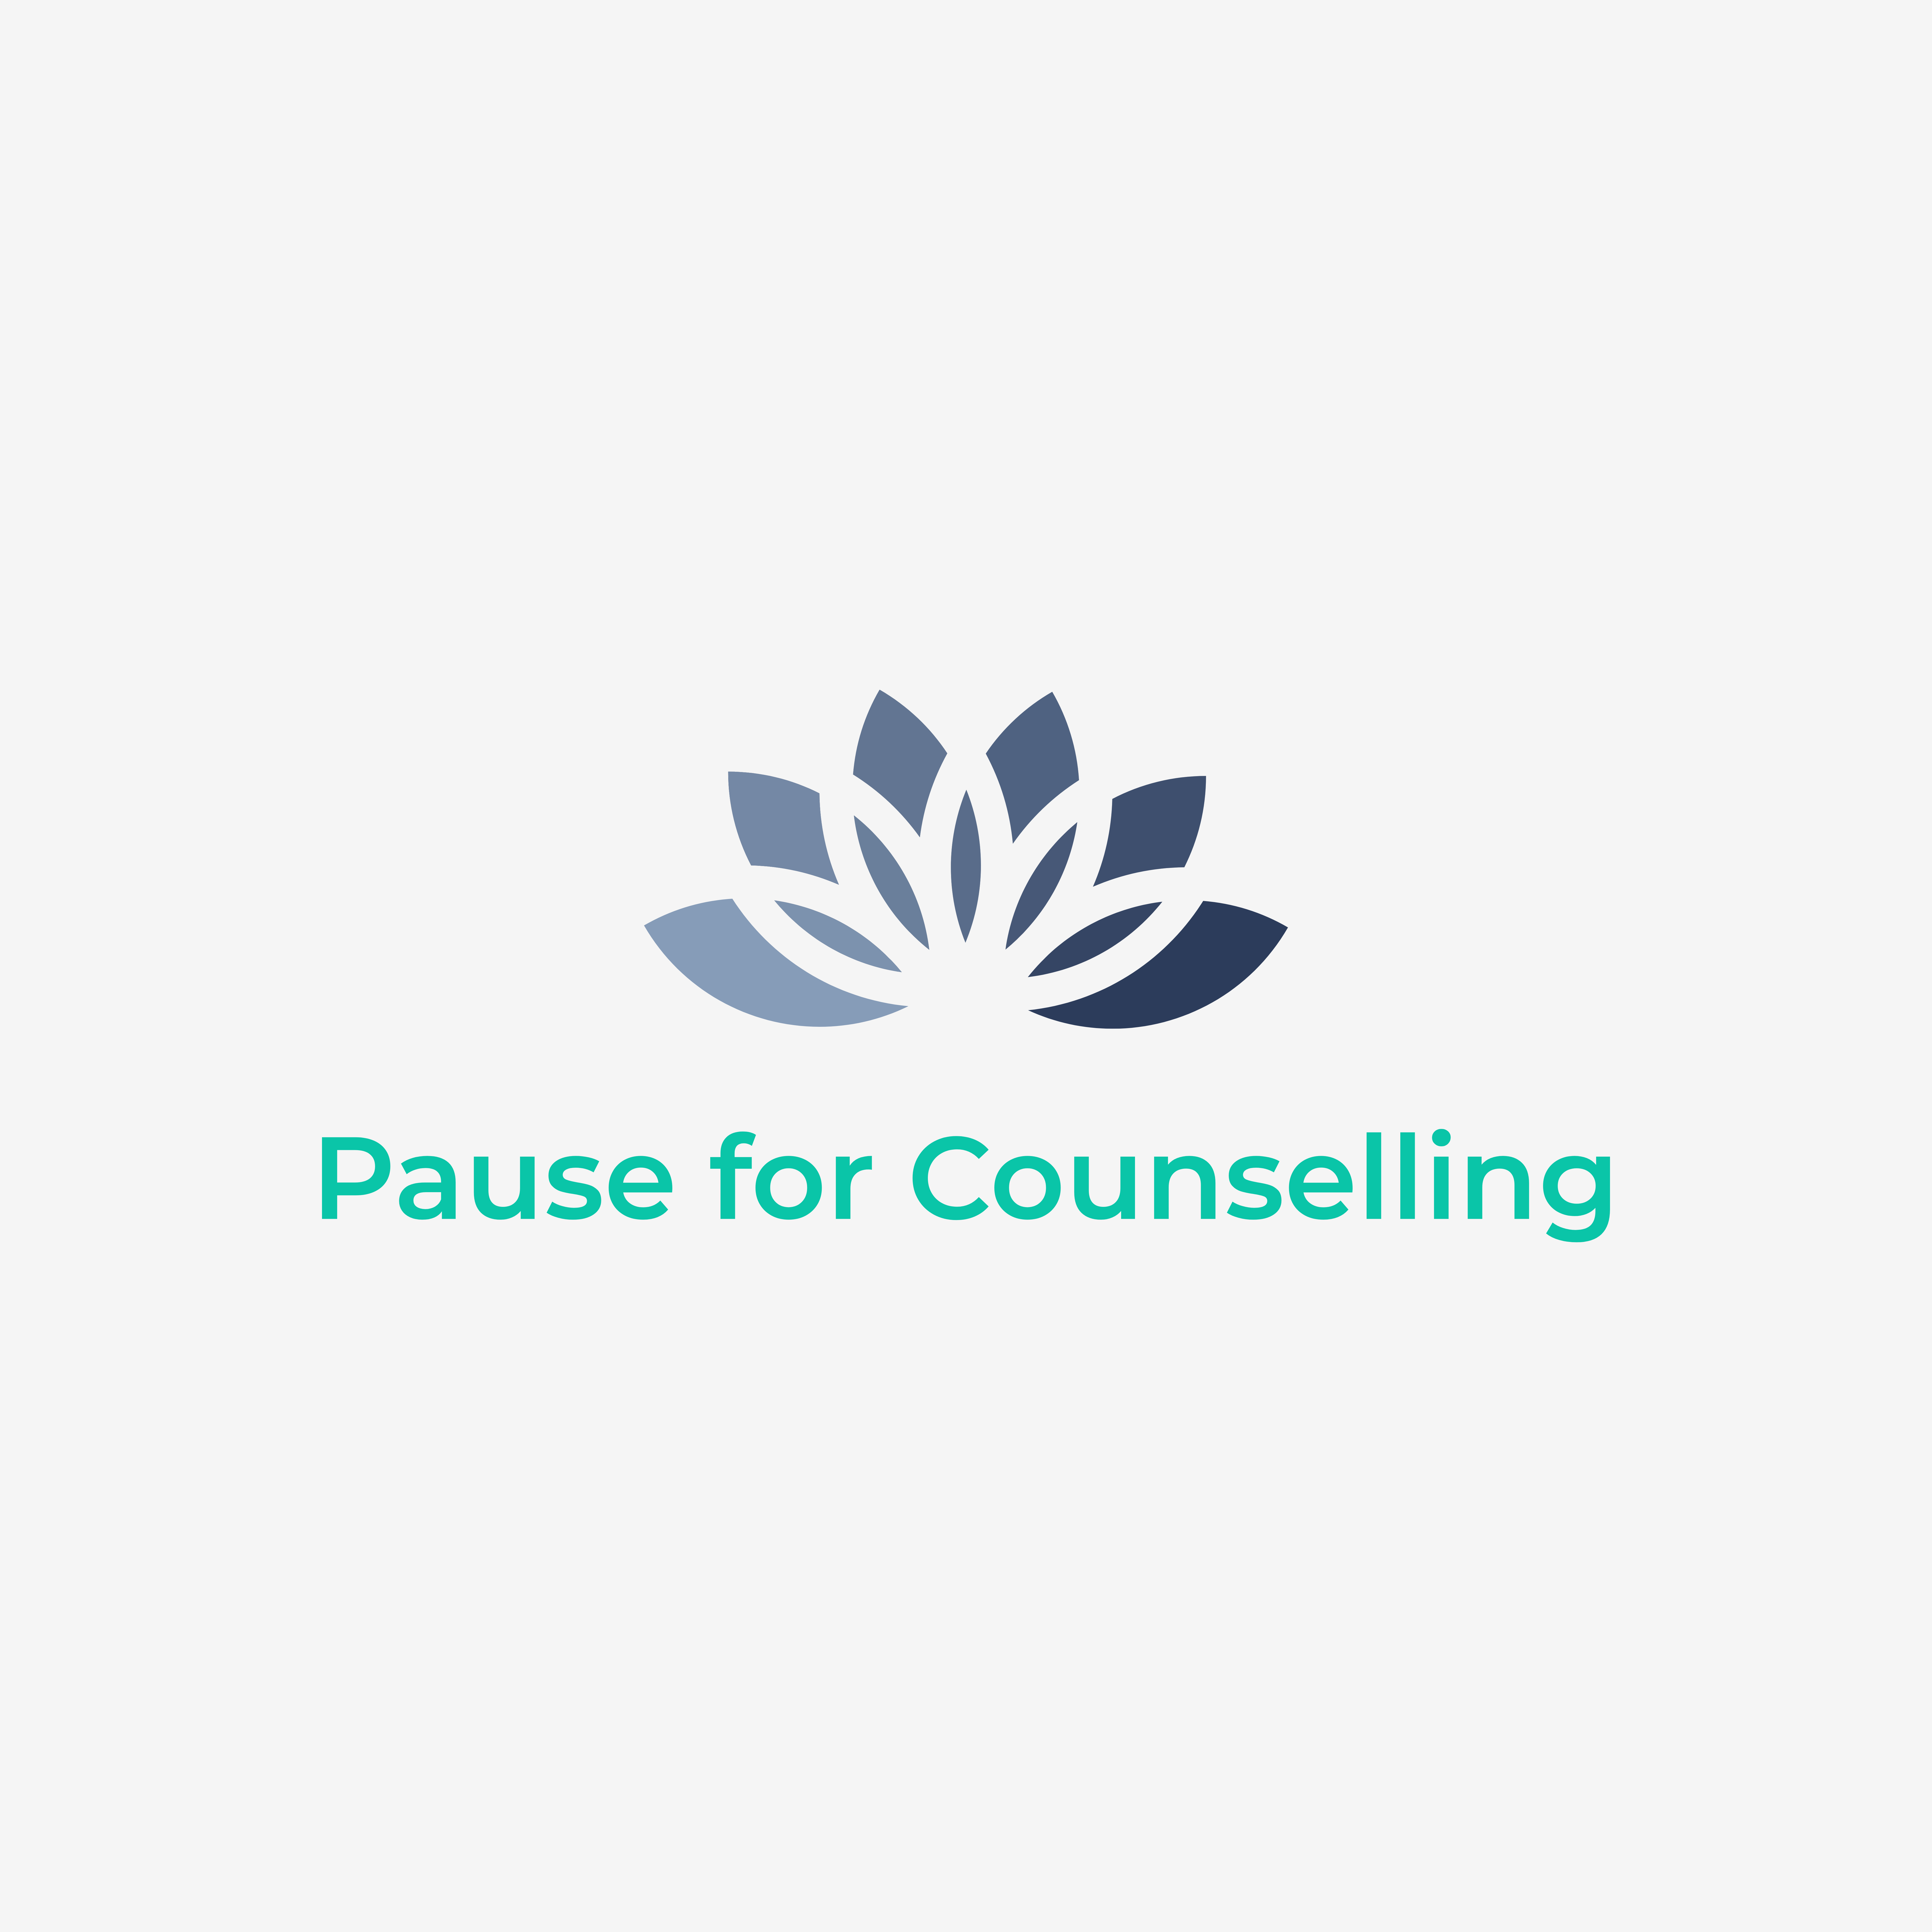 Pause for Counselling